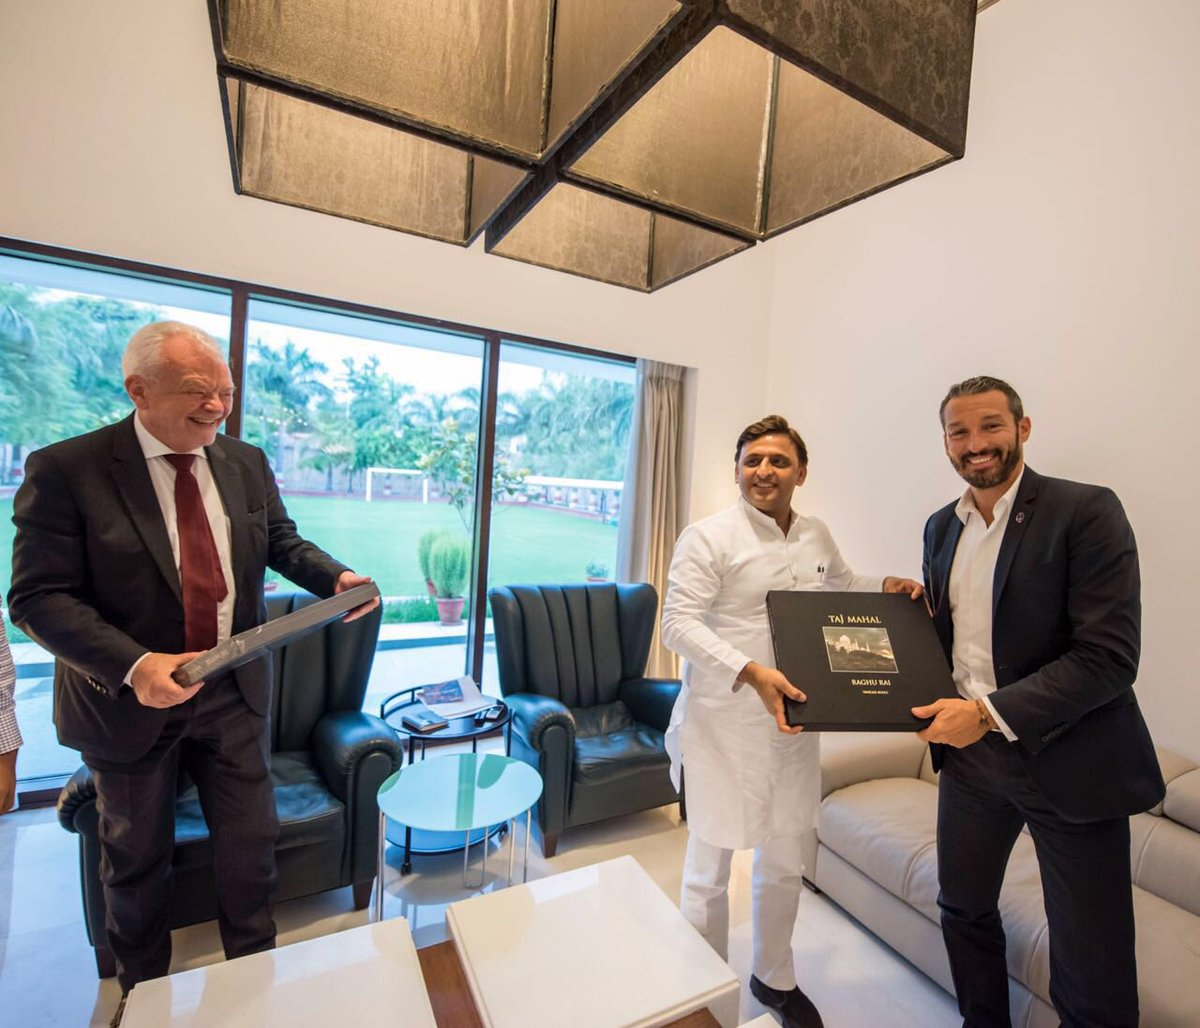 Chief Minister Akhilesh Yadav visit with the Italian footballer Gianluca Zambrotta and Harald Sandberg, the Swedish ambassador